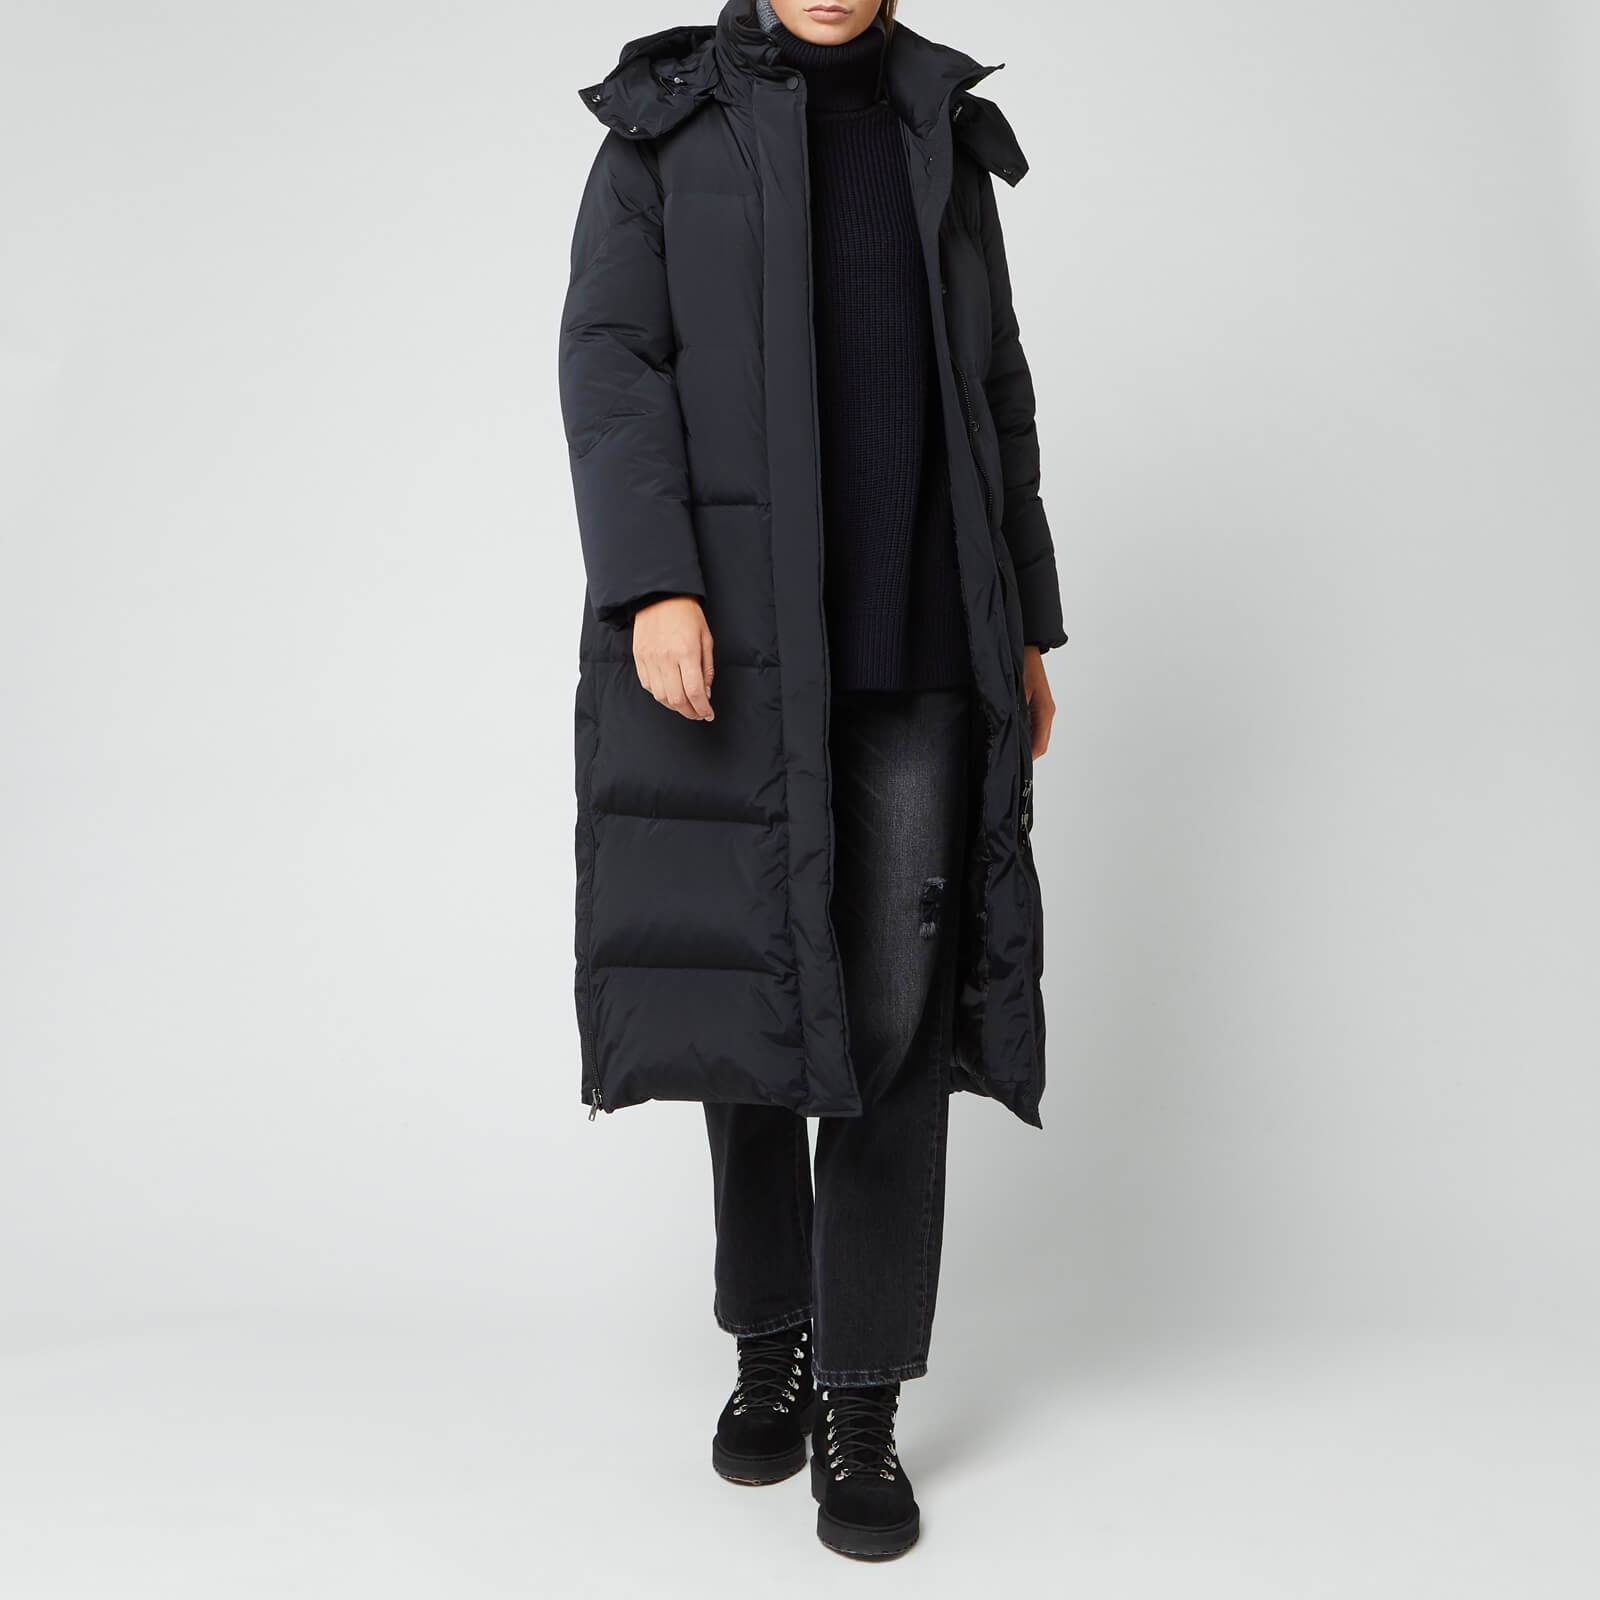 Woolrich Women's Aurora Long Parka - Black - L